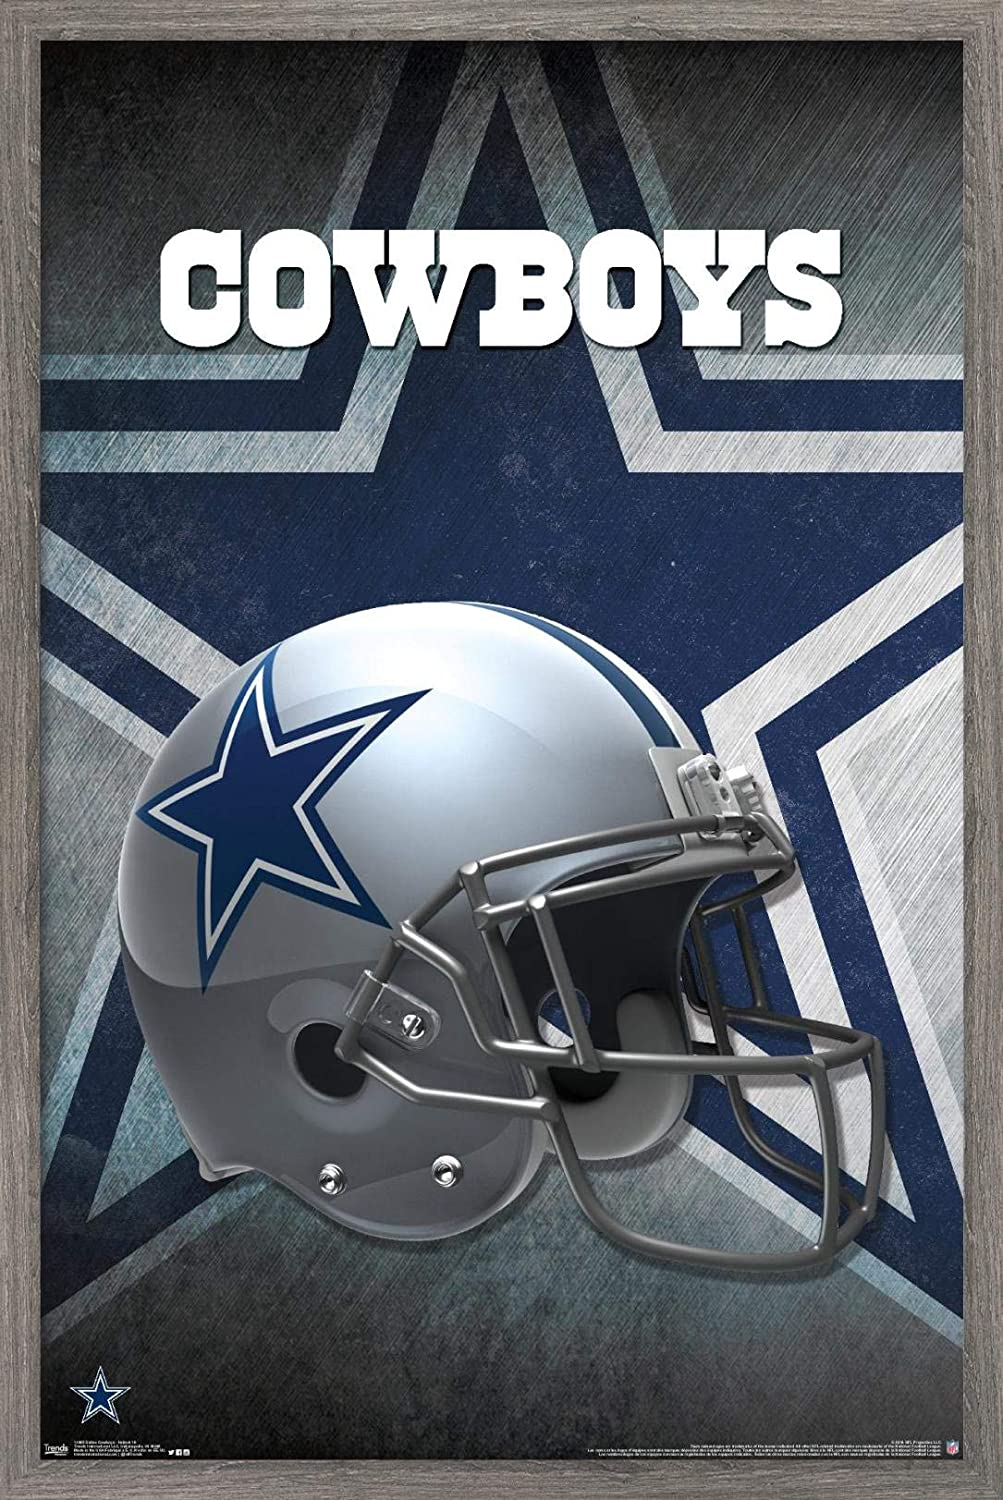 Trends International Max outlet 78% OFF NFL Dallas Cowboys 16 Wall - Poster Helmet